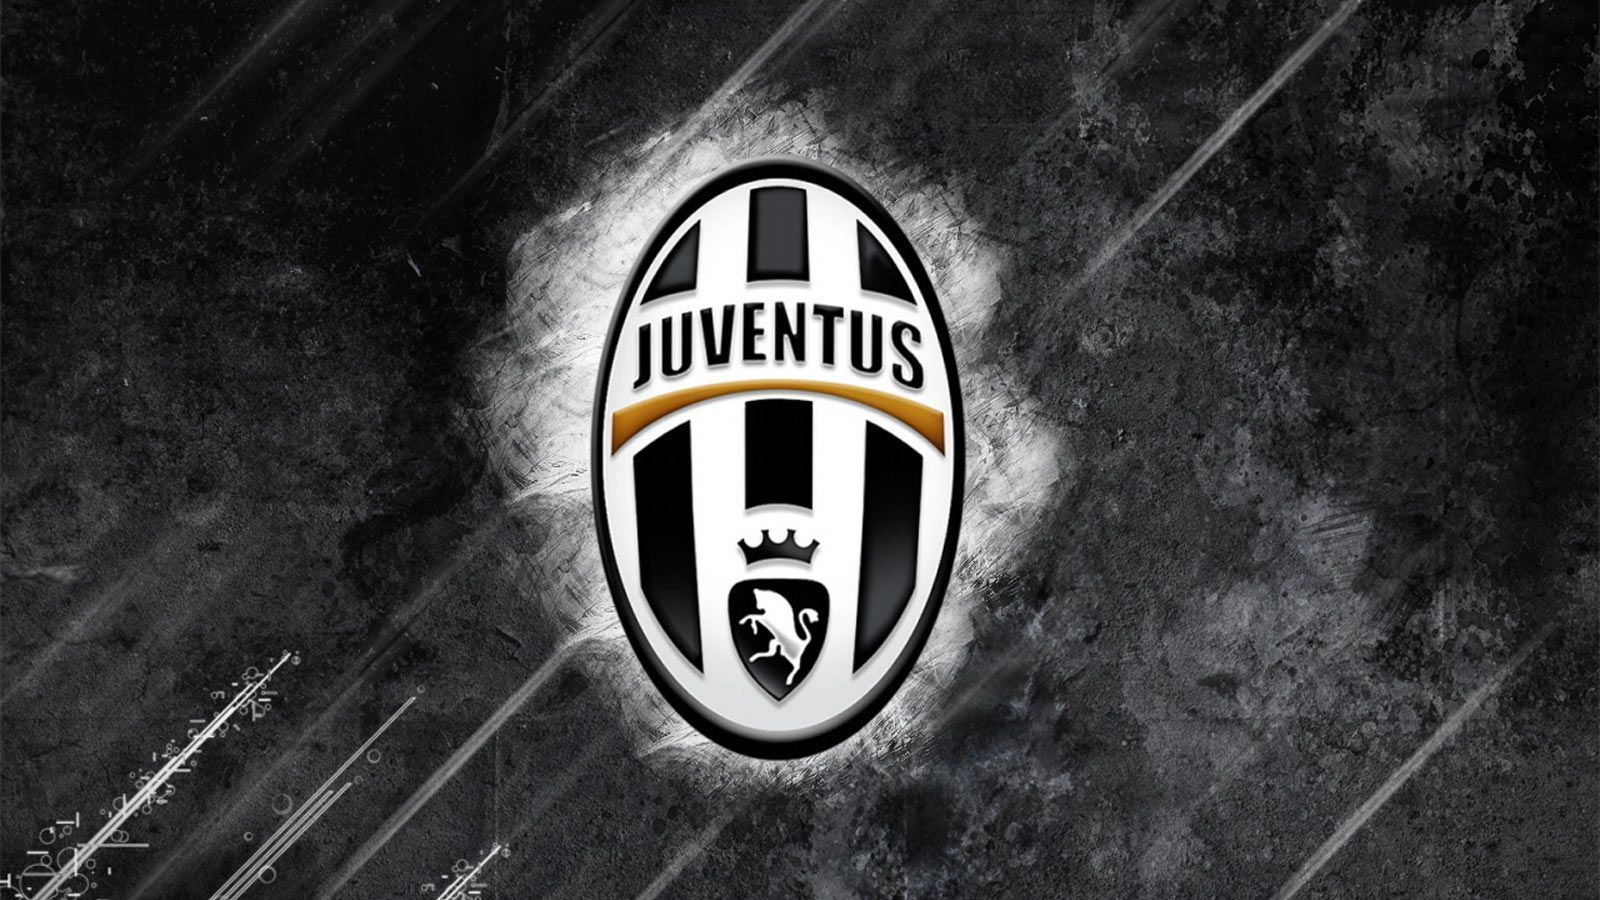 juventus wallpaper high resolution - 2018 wallpapers hd | pinterest